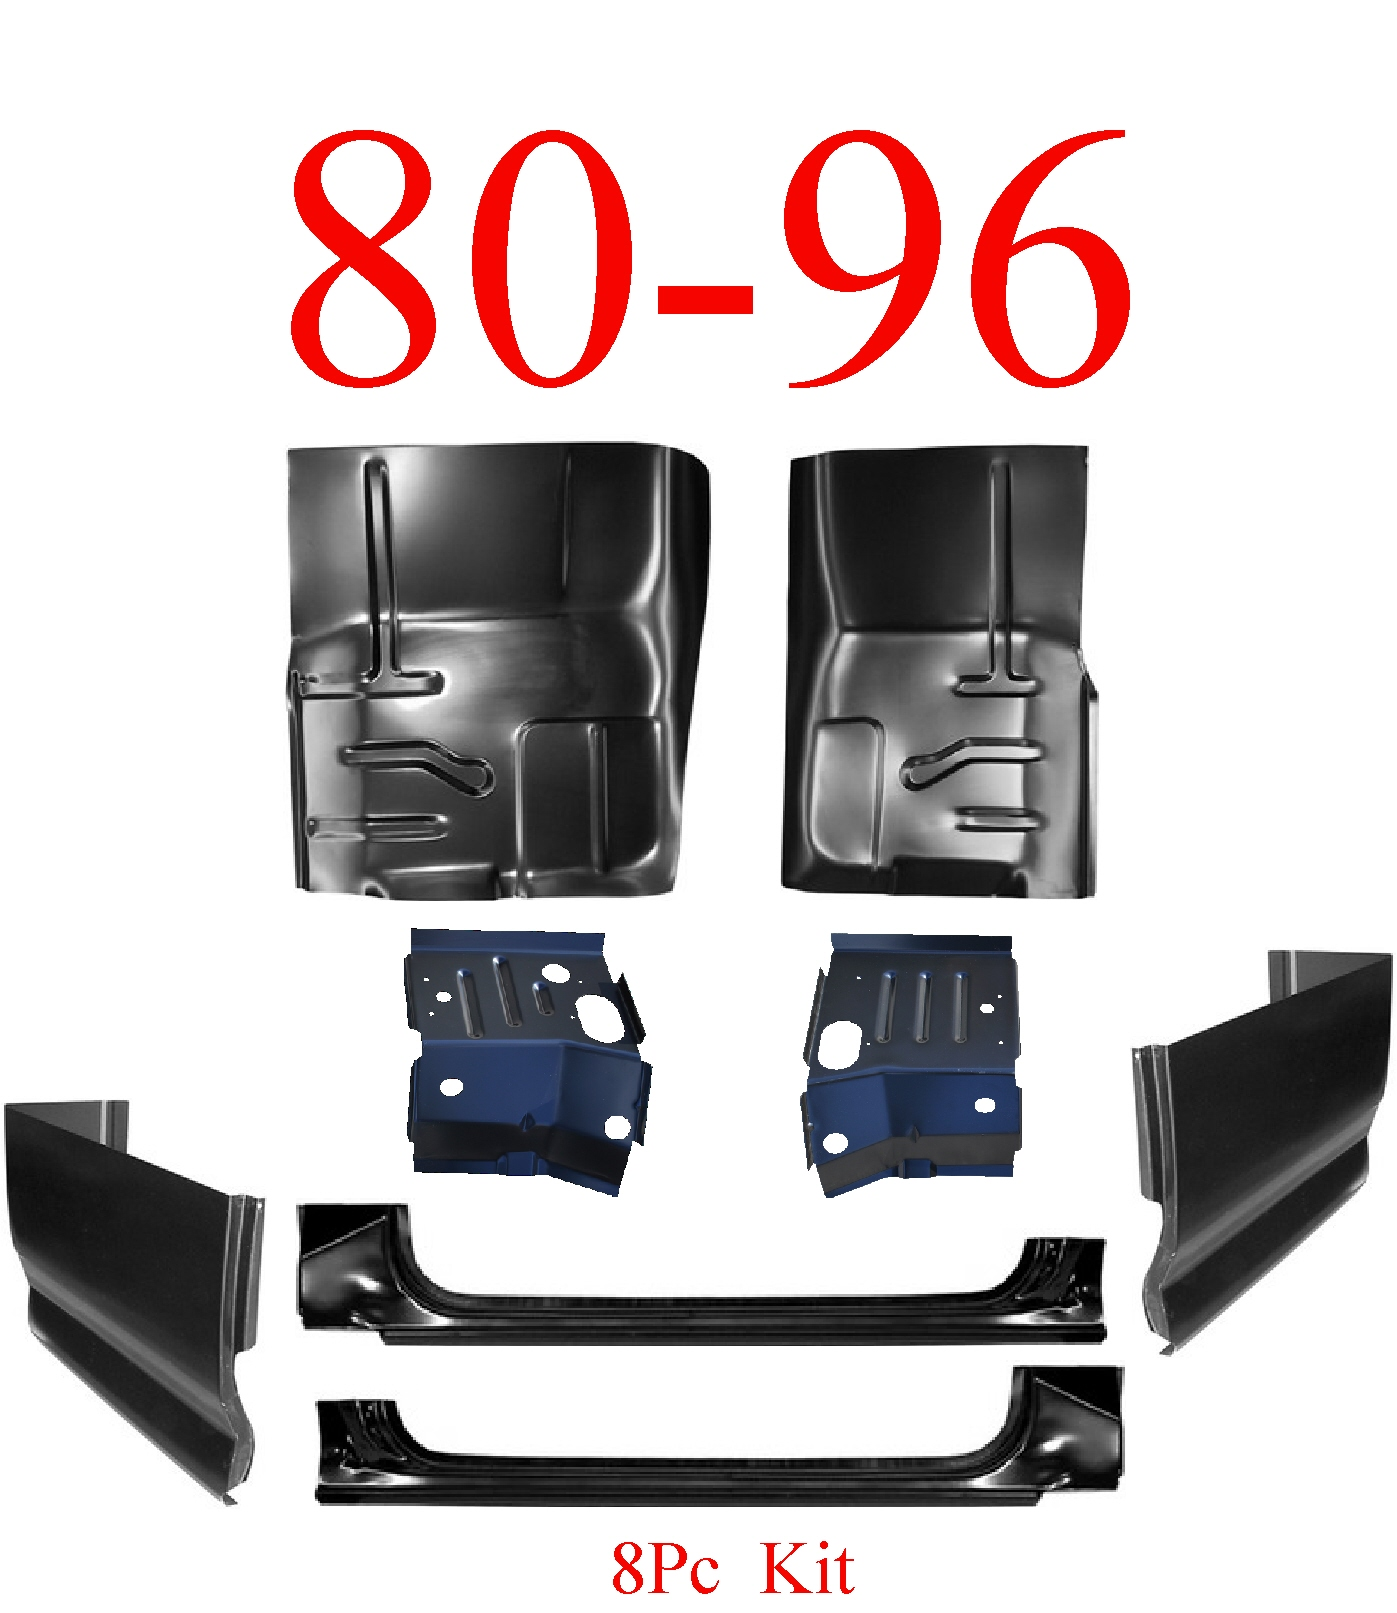 80-96 Ford 8Pc X-Rocker, X-Cab Corner, Floor & Cab Mount Kit